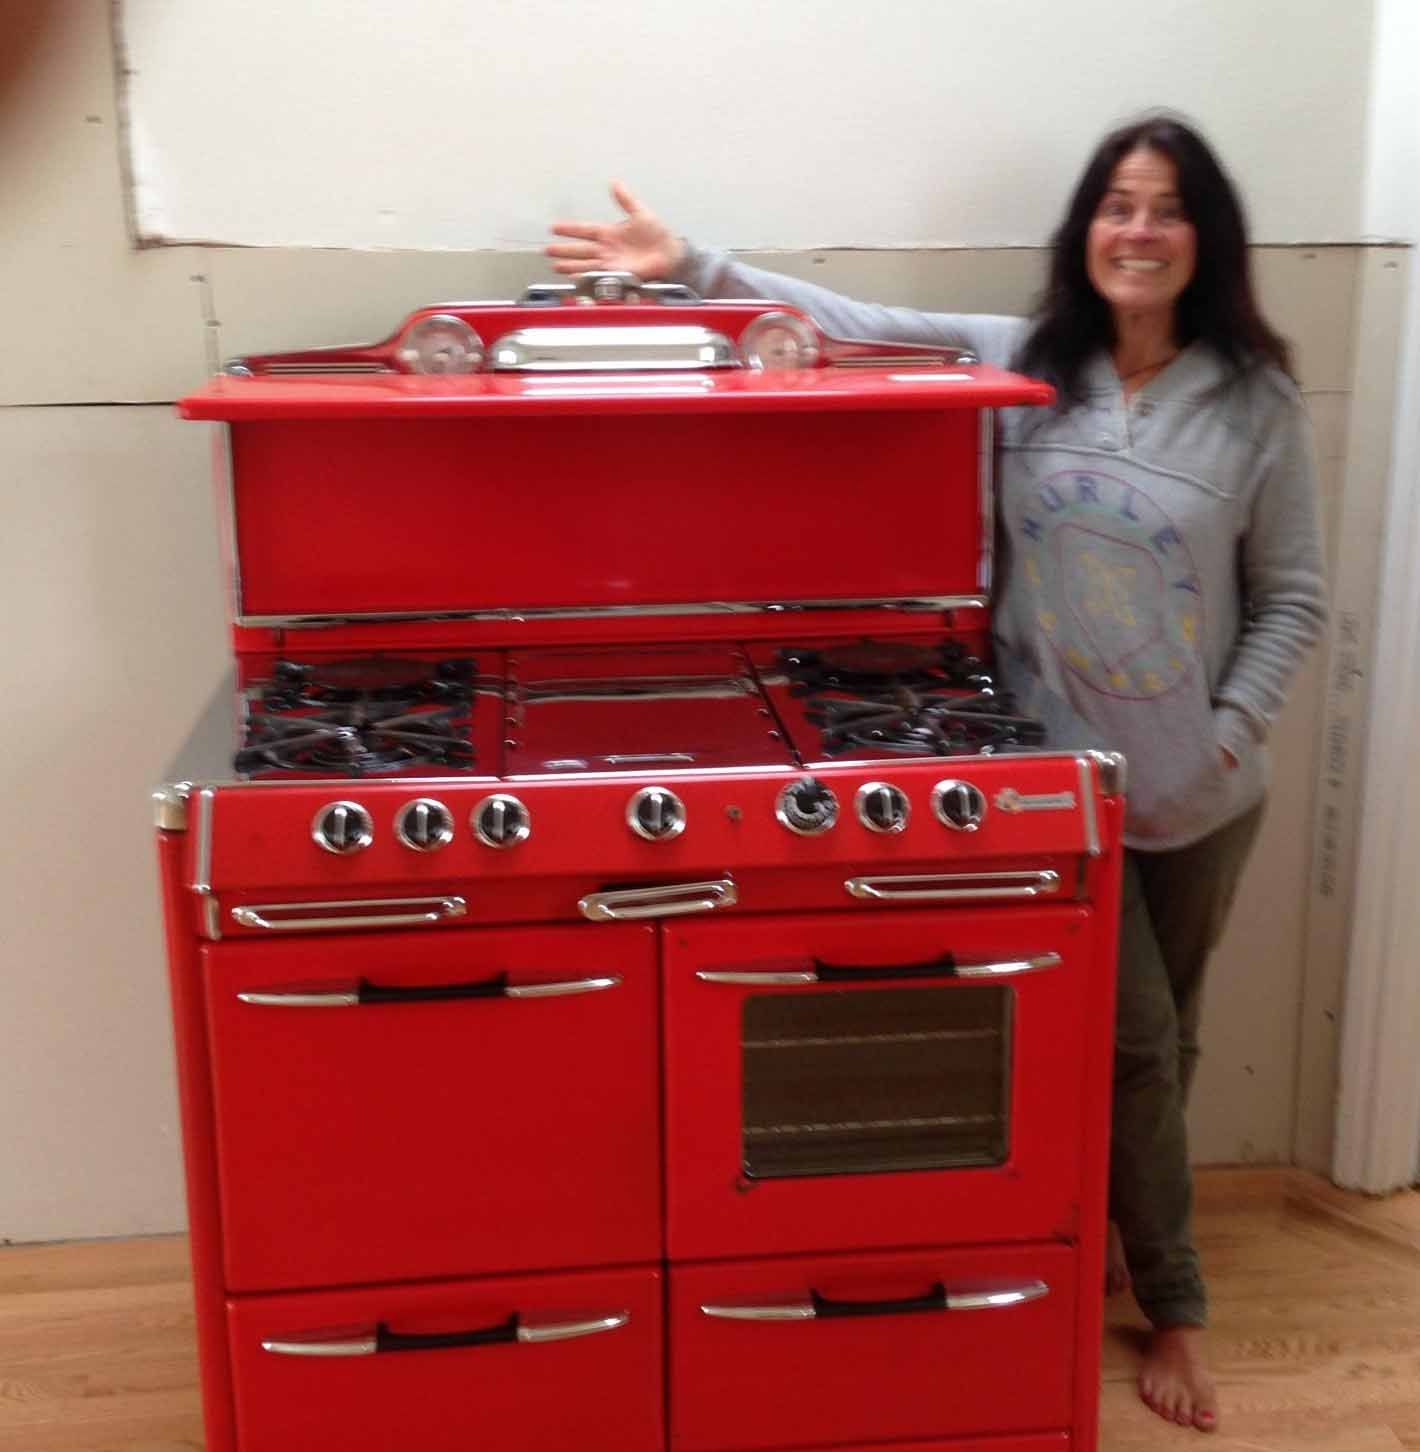 Kitchen Stoves For Sale: Kitchen Sink Stove Refrigerator Combo, Kitchen Stoves For